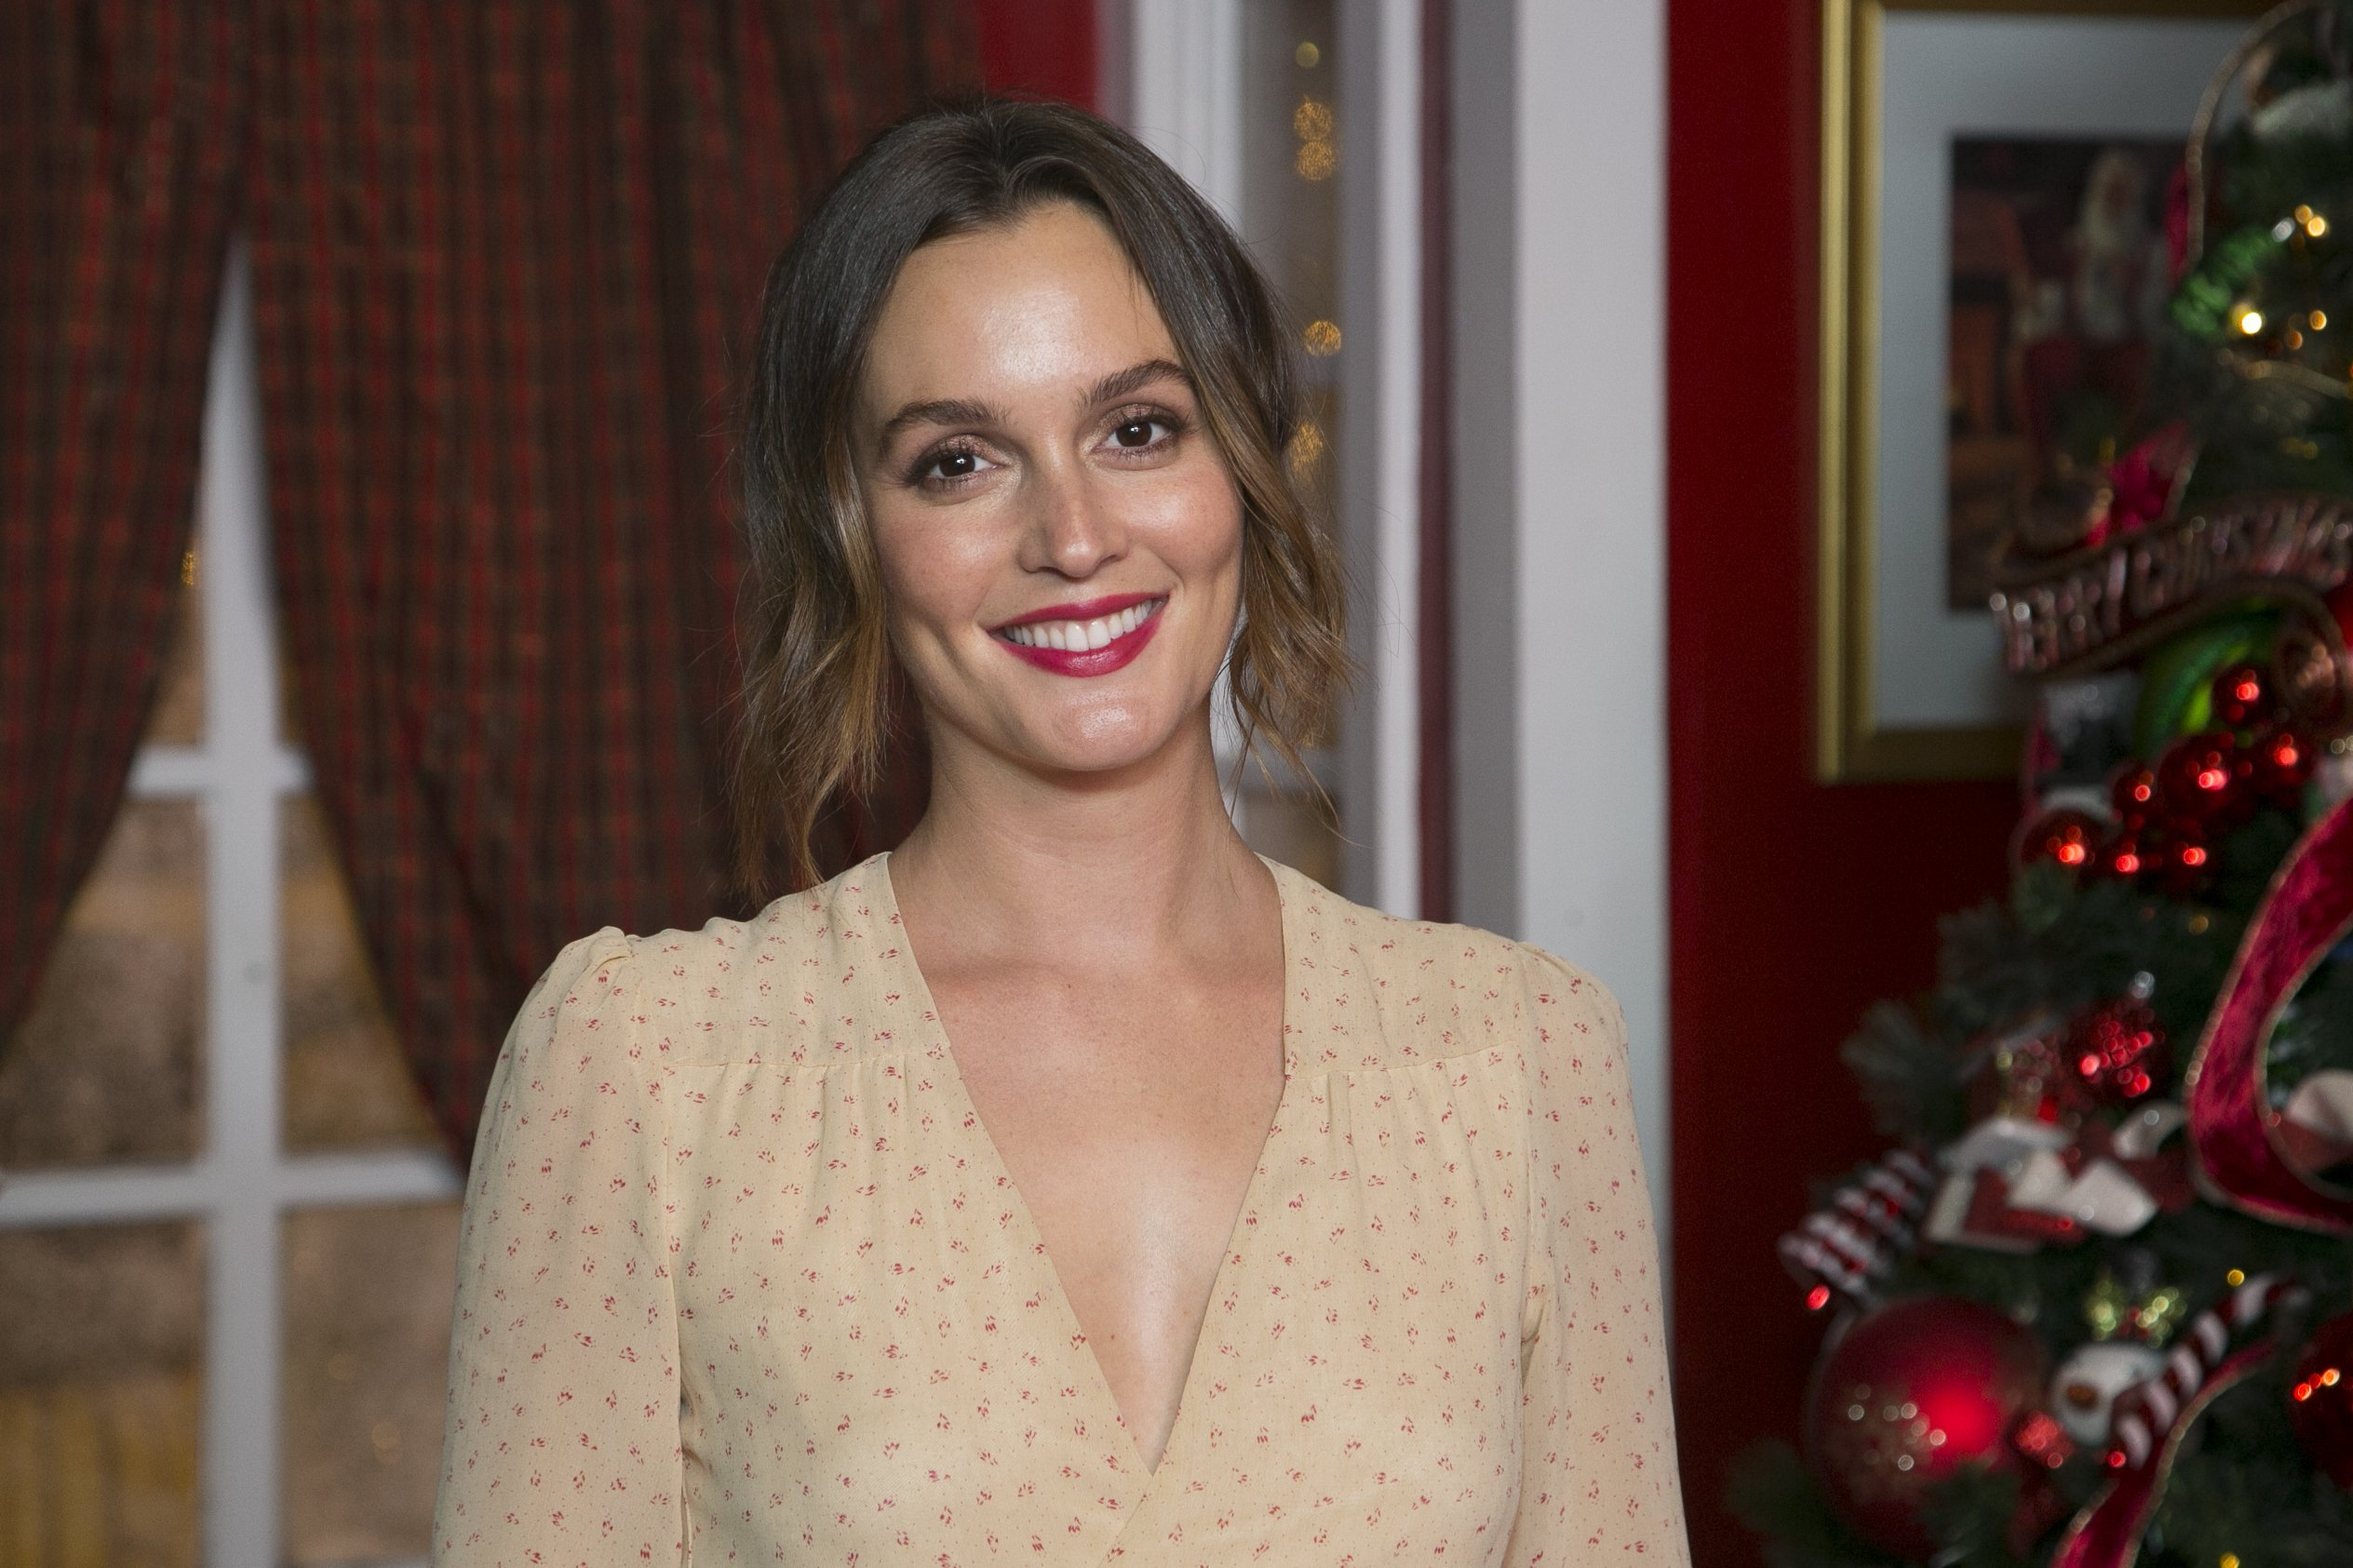 Leighton Meester attends The Americana At Brand Annual Christmas Tree Lighting And Show at The Americana at Brand on November 14, 2019 | Photo: Getty Images